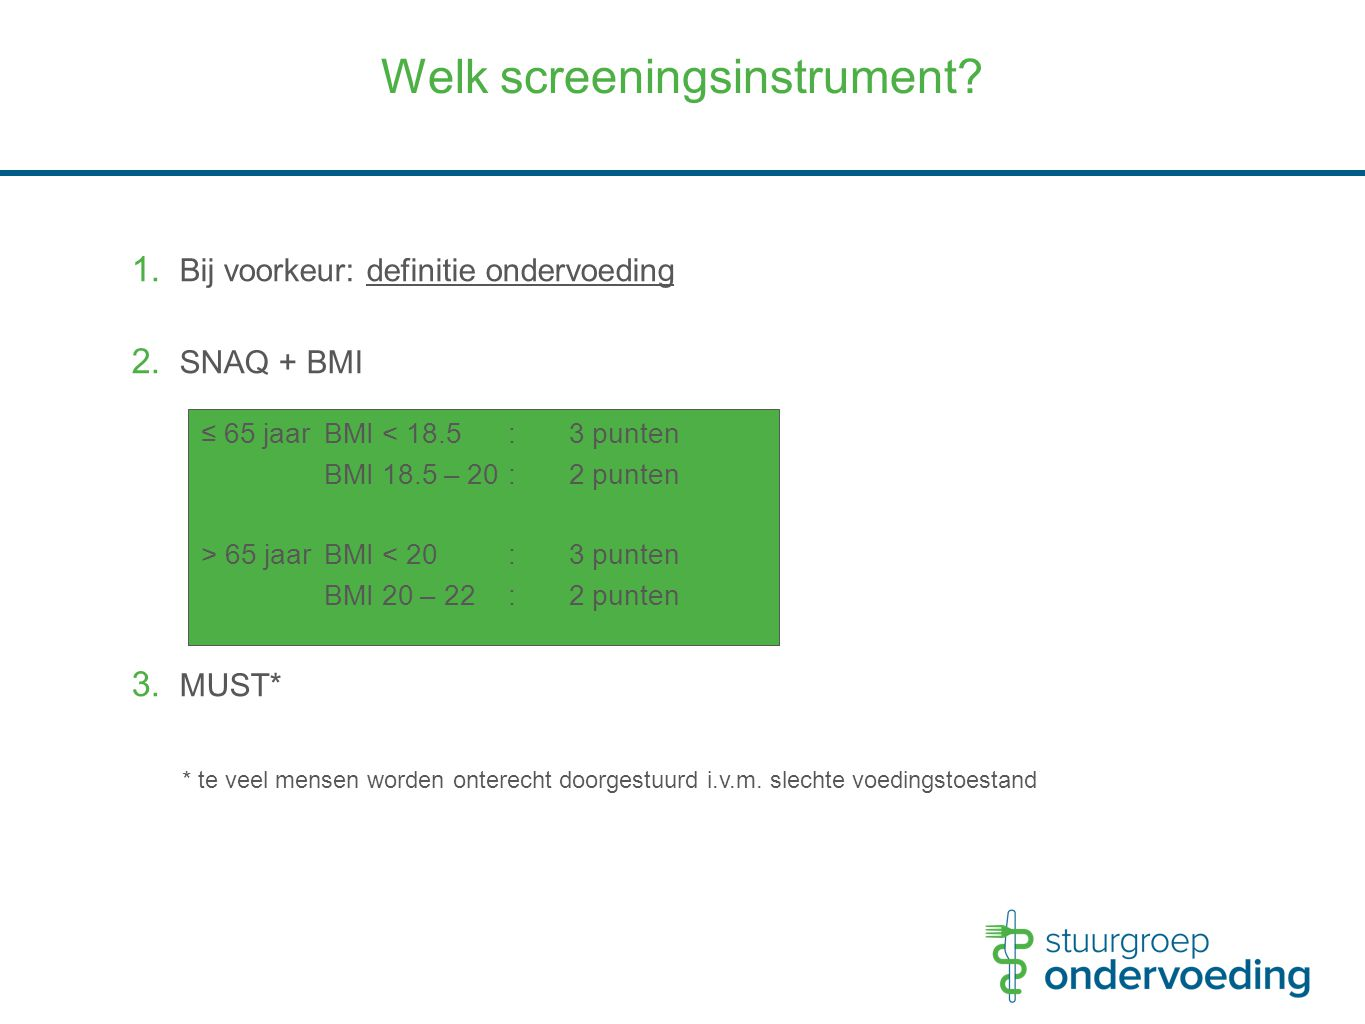 Welk screeningsinstrument